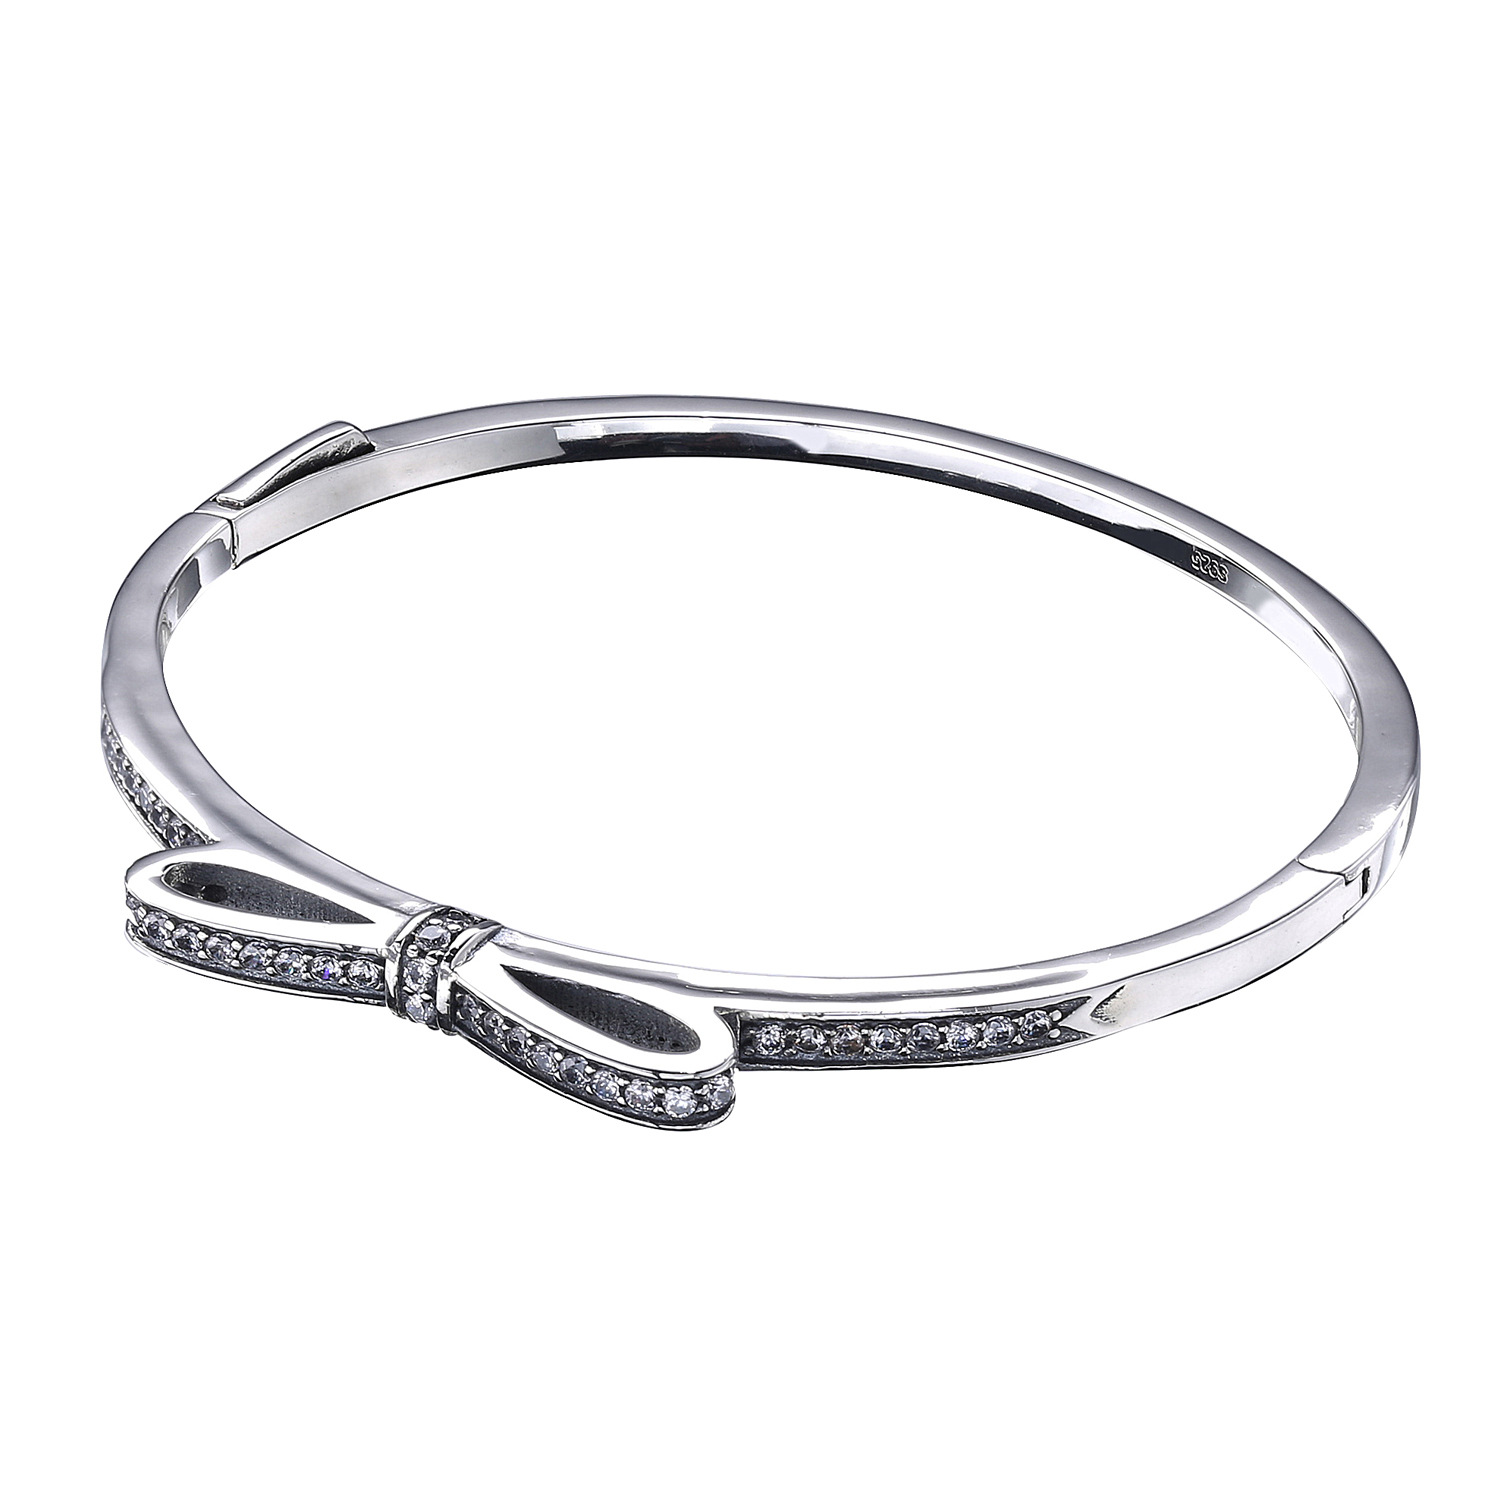 Top Quality Sparkling Bow With Cubic Zirconia Panodra Bangle Bracelet Fit Women Bead Charm 925 Sterling Silver Europe Jewelry top quality bright mint enamel clear cz radiant hearts of pan bangle fit europe bracelet 925 sterling silver bead charm jewelry